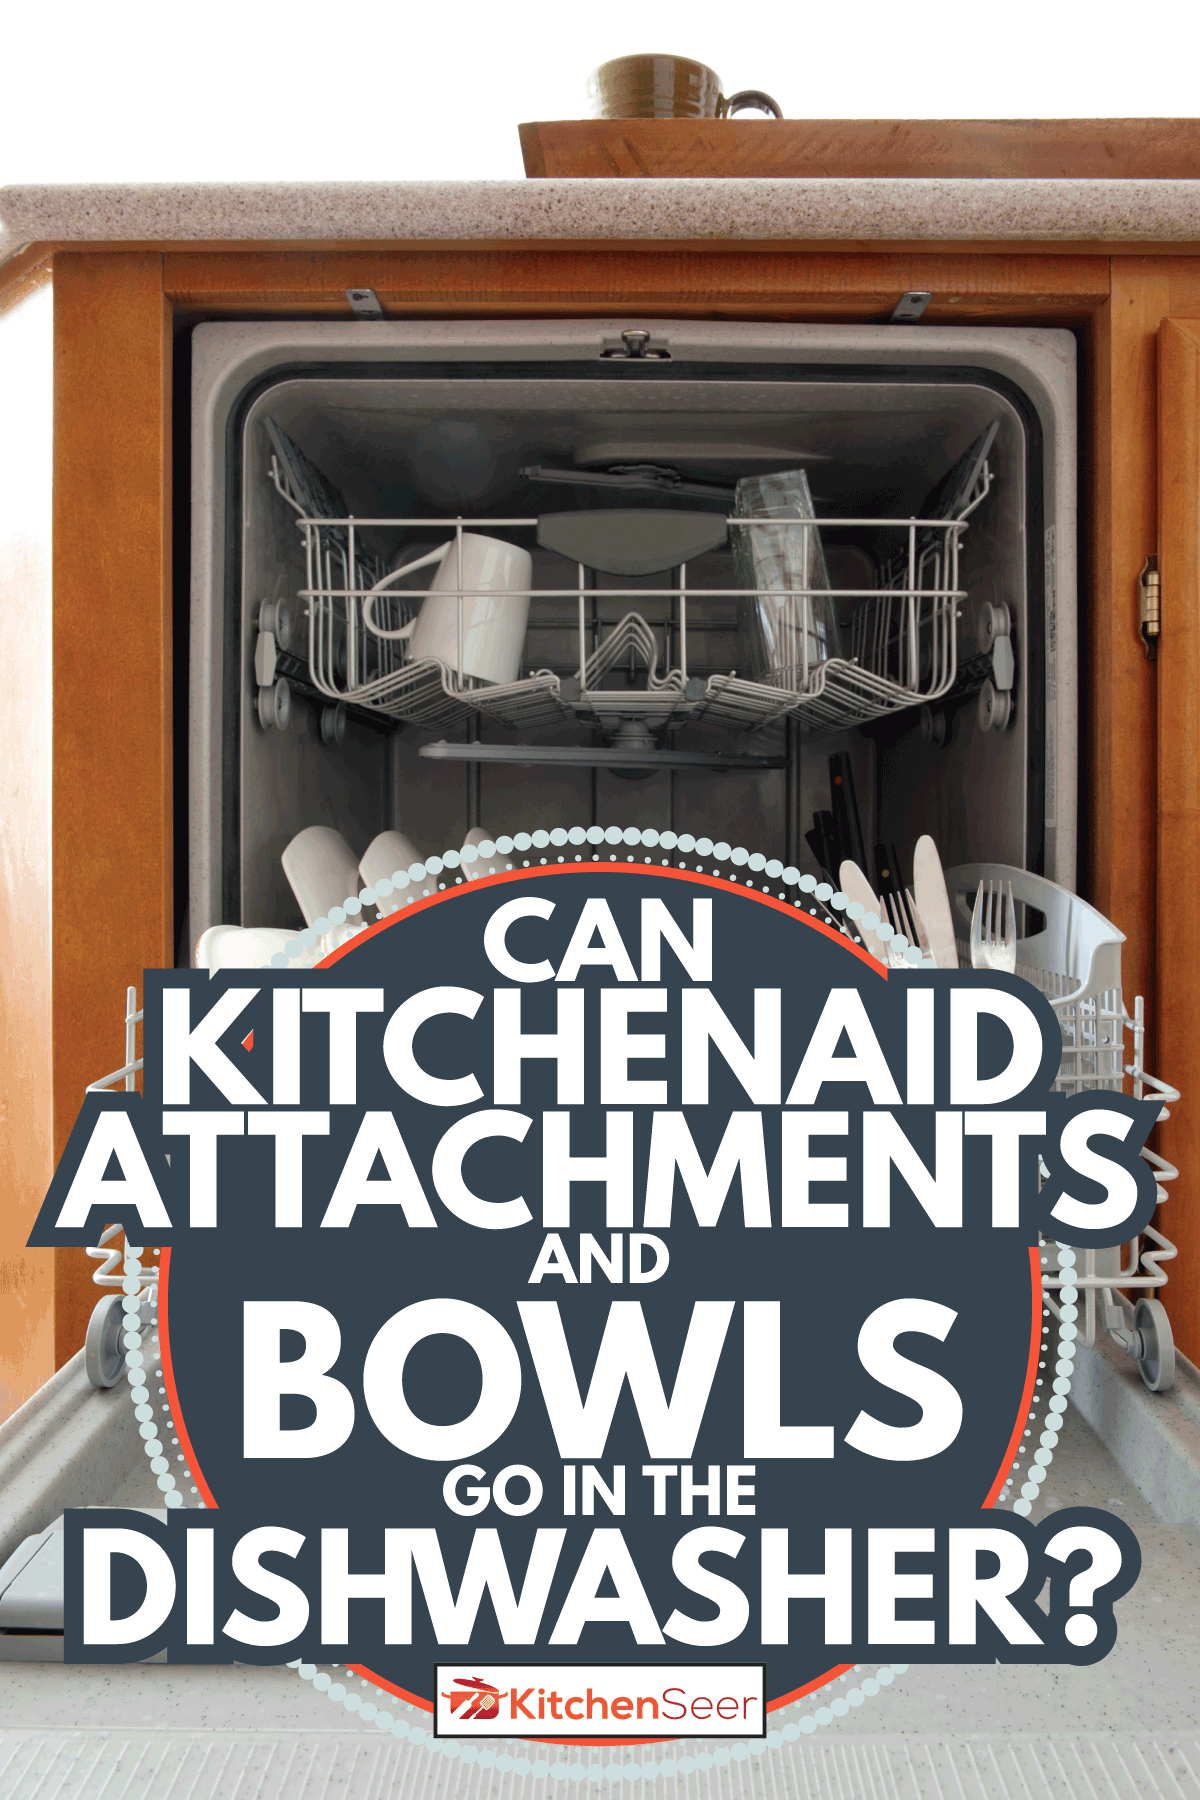 Dishwasher with cleaned dishes inside, Can KitchenAid Attachments And Bowls Go In The Dishwasher